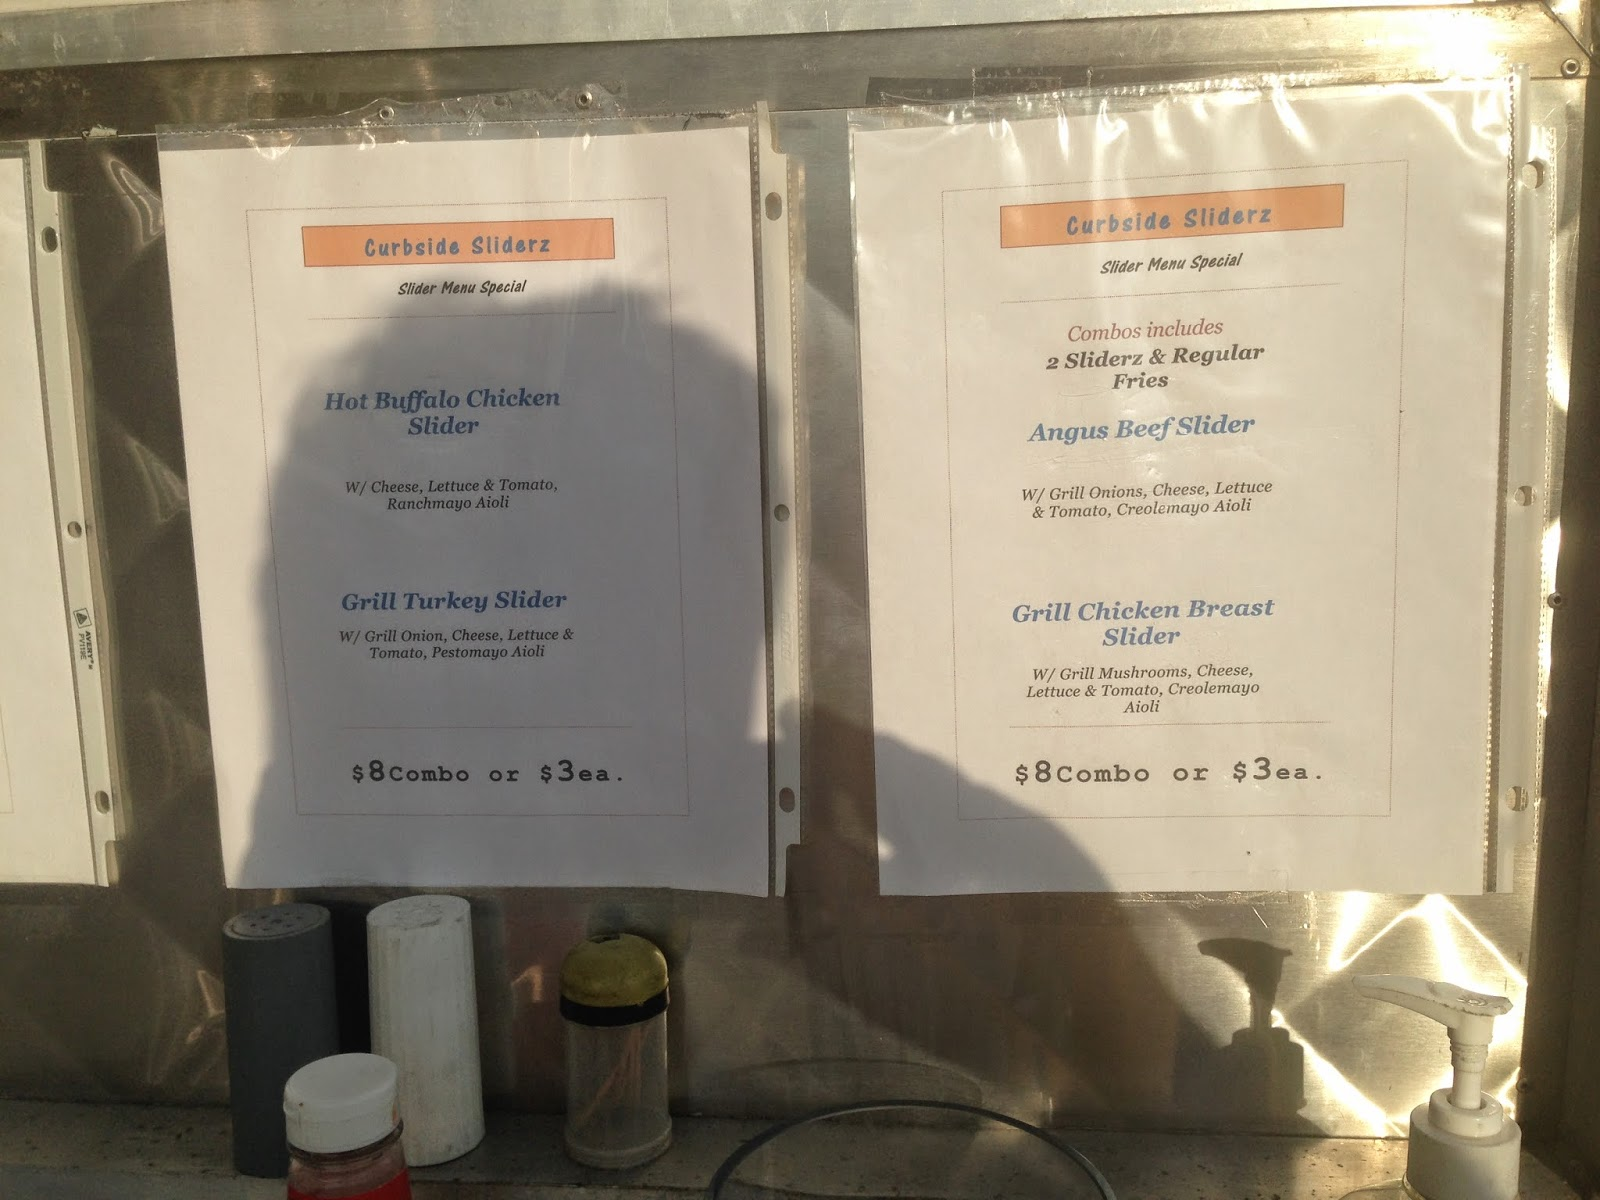 Curbside Sliderz Food Truck Menu